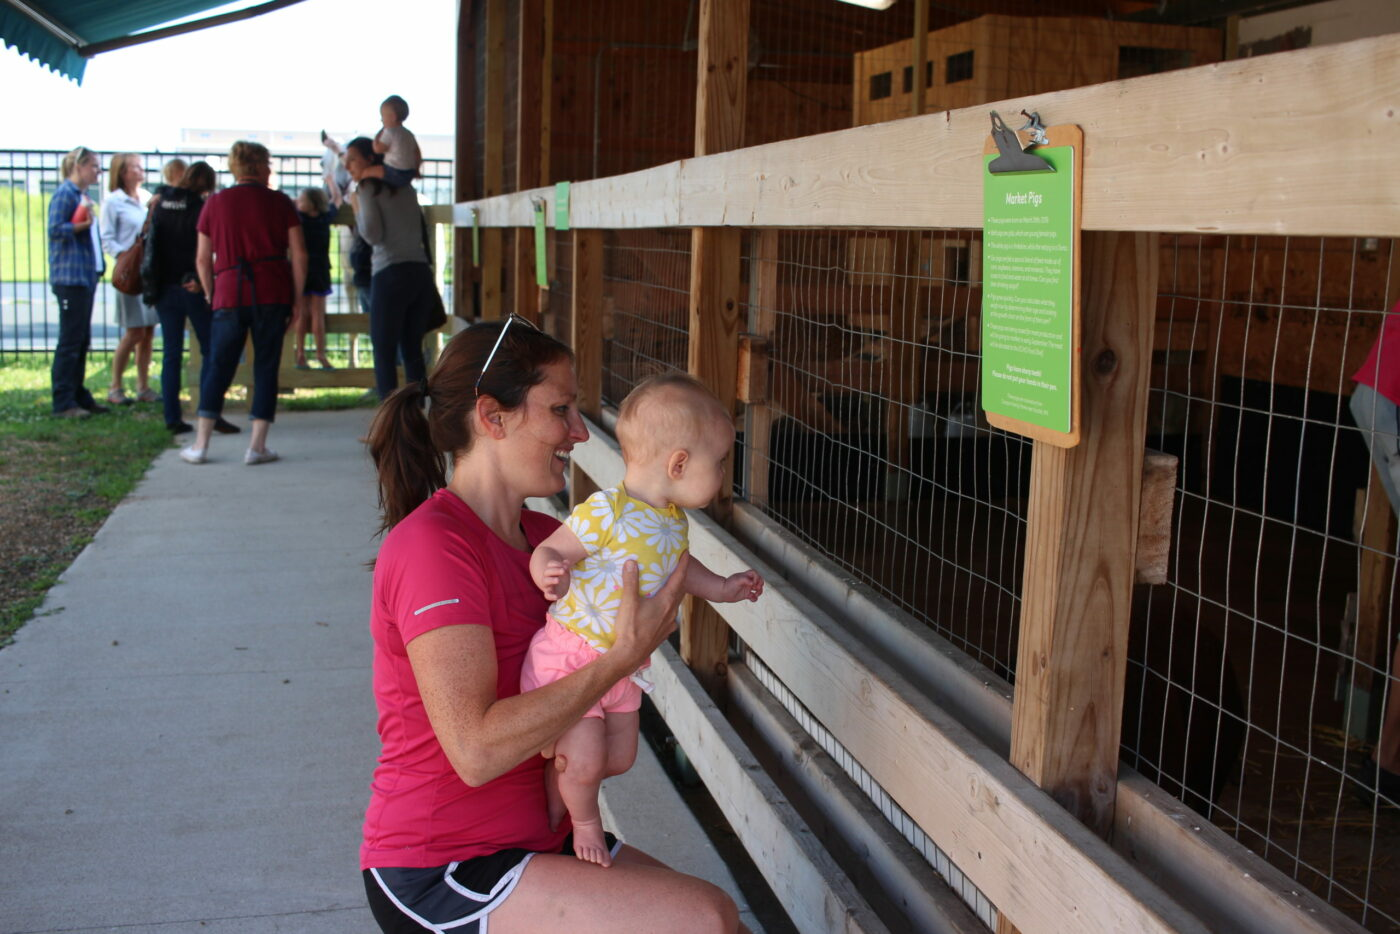 Baby and Parent learning about Pigs in the Alltech Farmyard at the Children's Museum of Southern Minnesota in Mankato